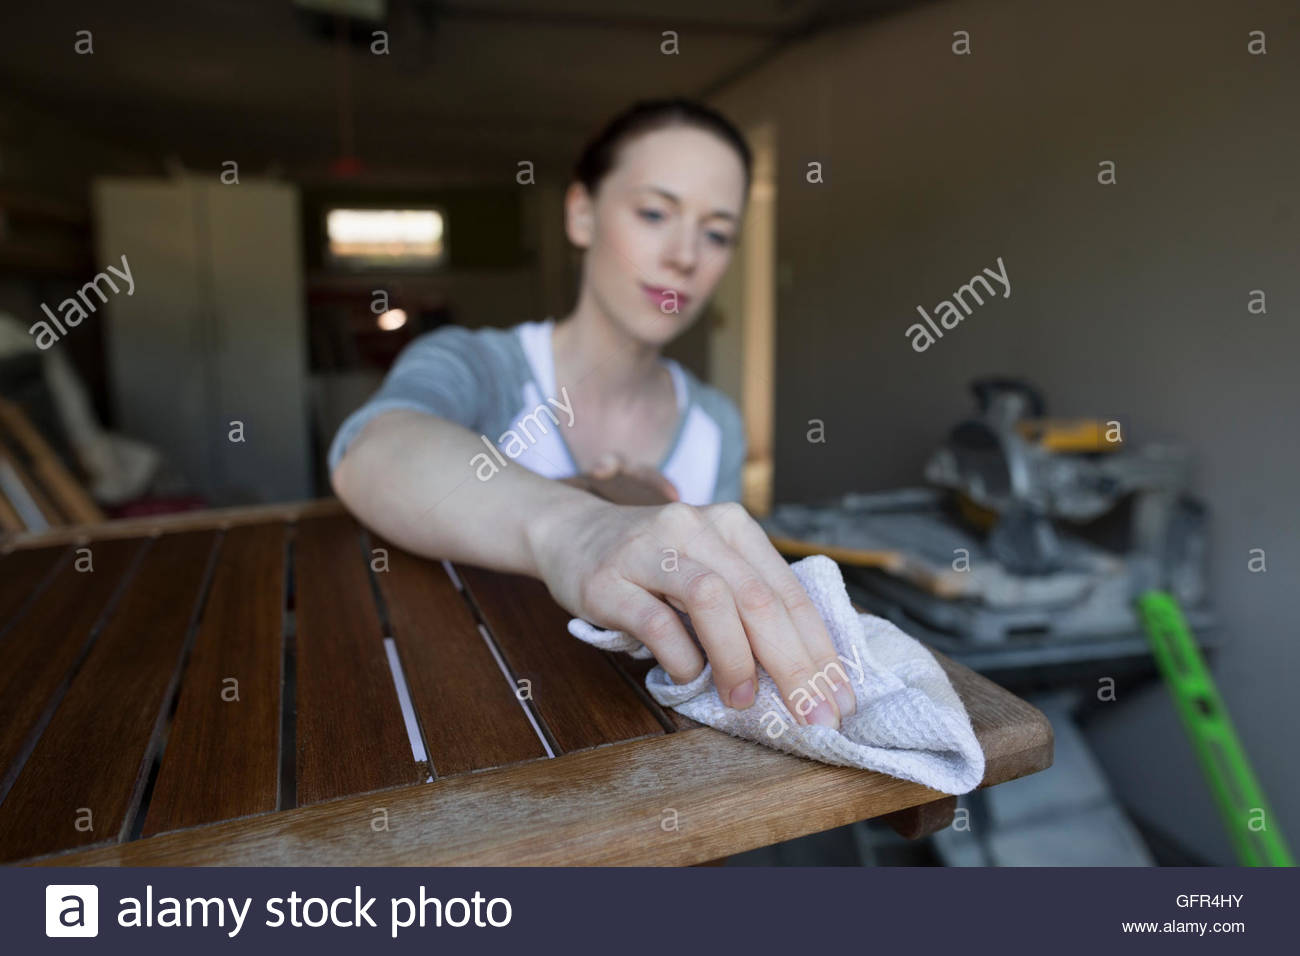 Woman staining wood furniture home improvement project in garage - Stock Image